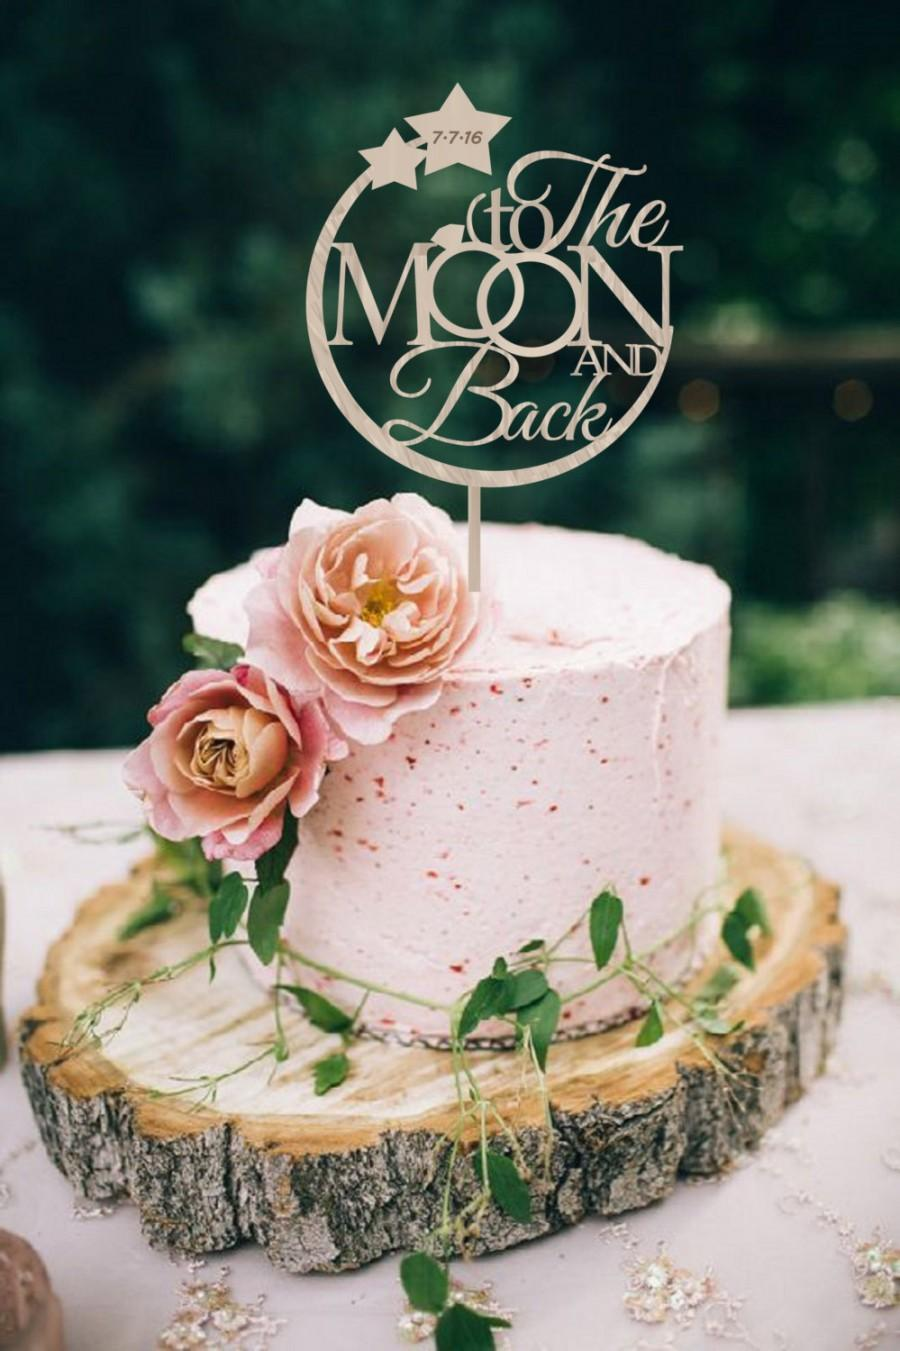 Wedding Cake Topper To The Moon And Back Rustic Custom